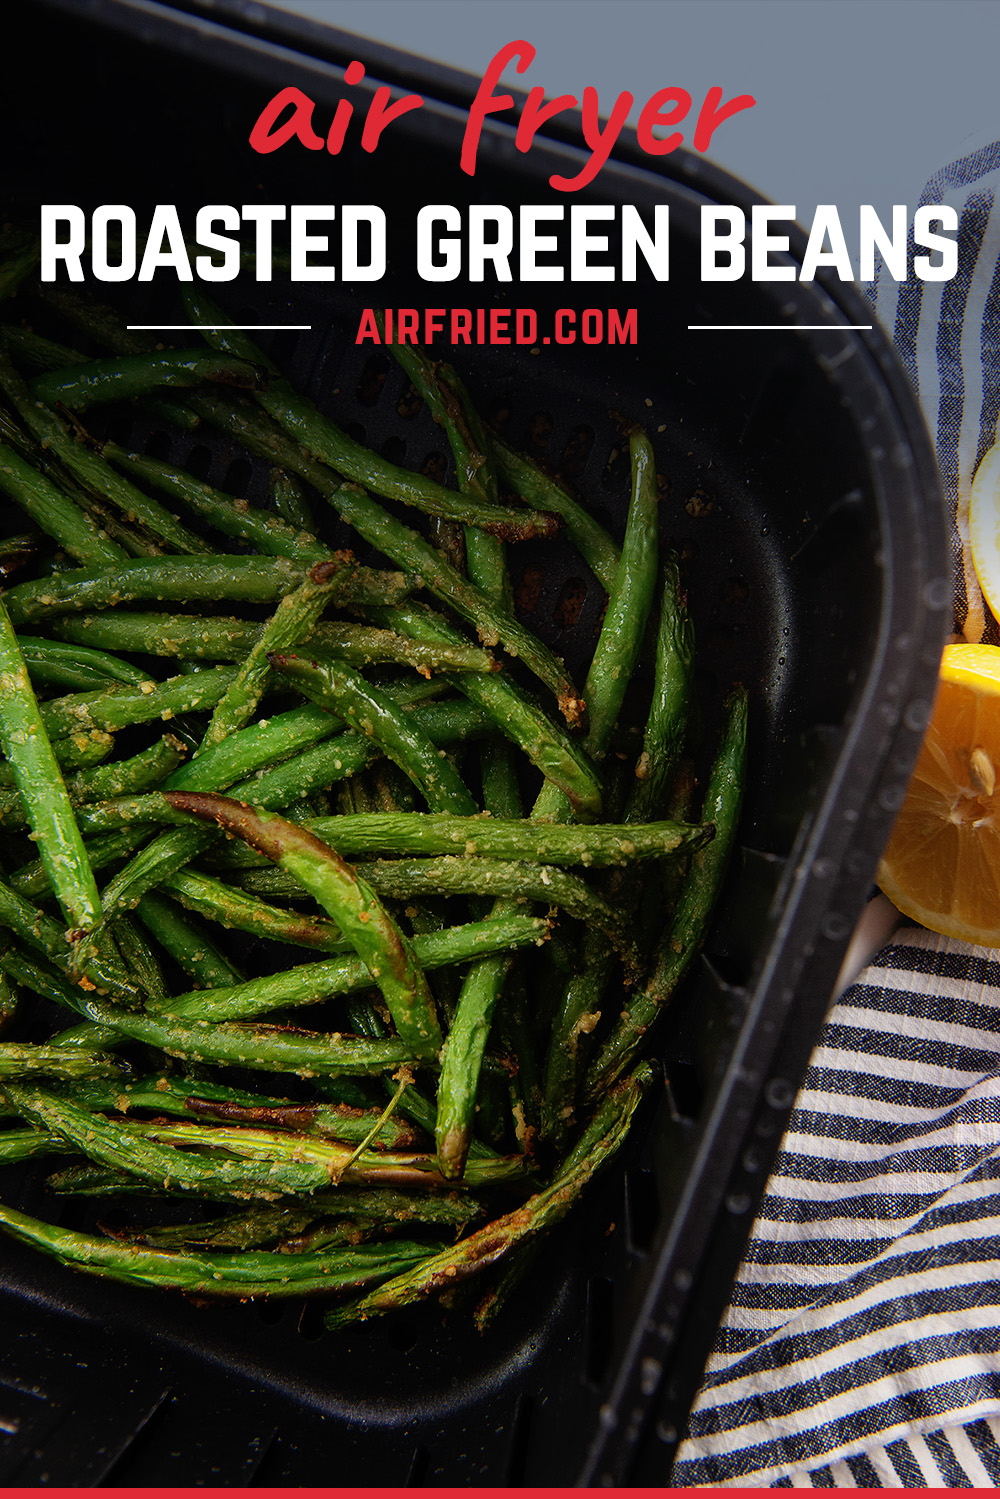 Just 10 minutes in the air fryer and these Garlic Parmesan Green Beans are perfect!